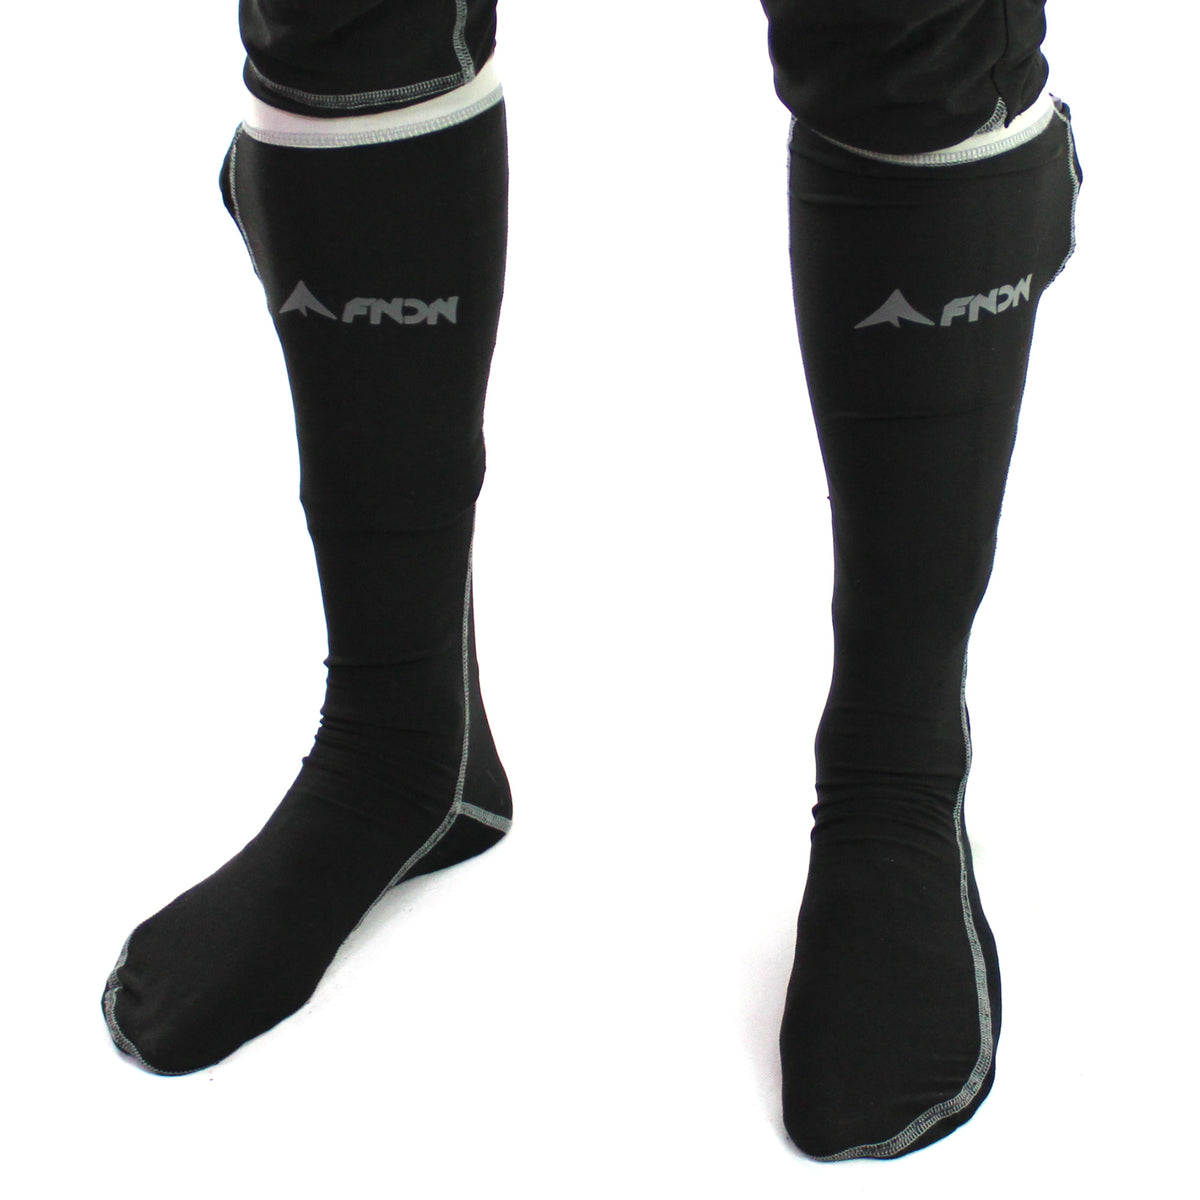 FNDN Heated 3.7V Base Layer Socks